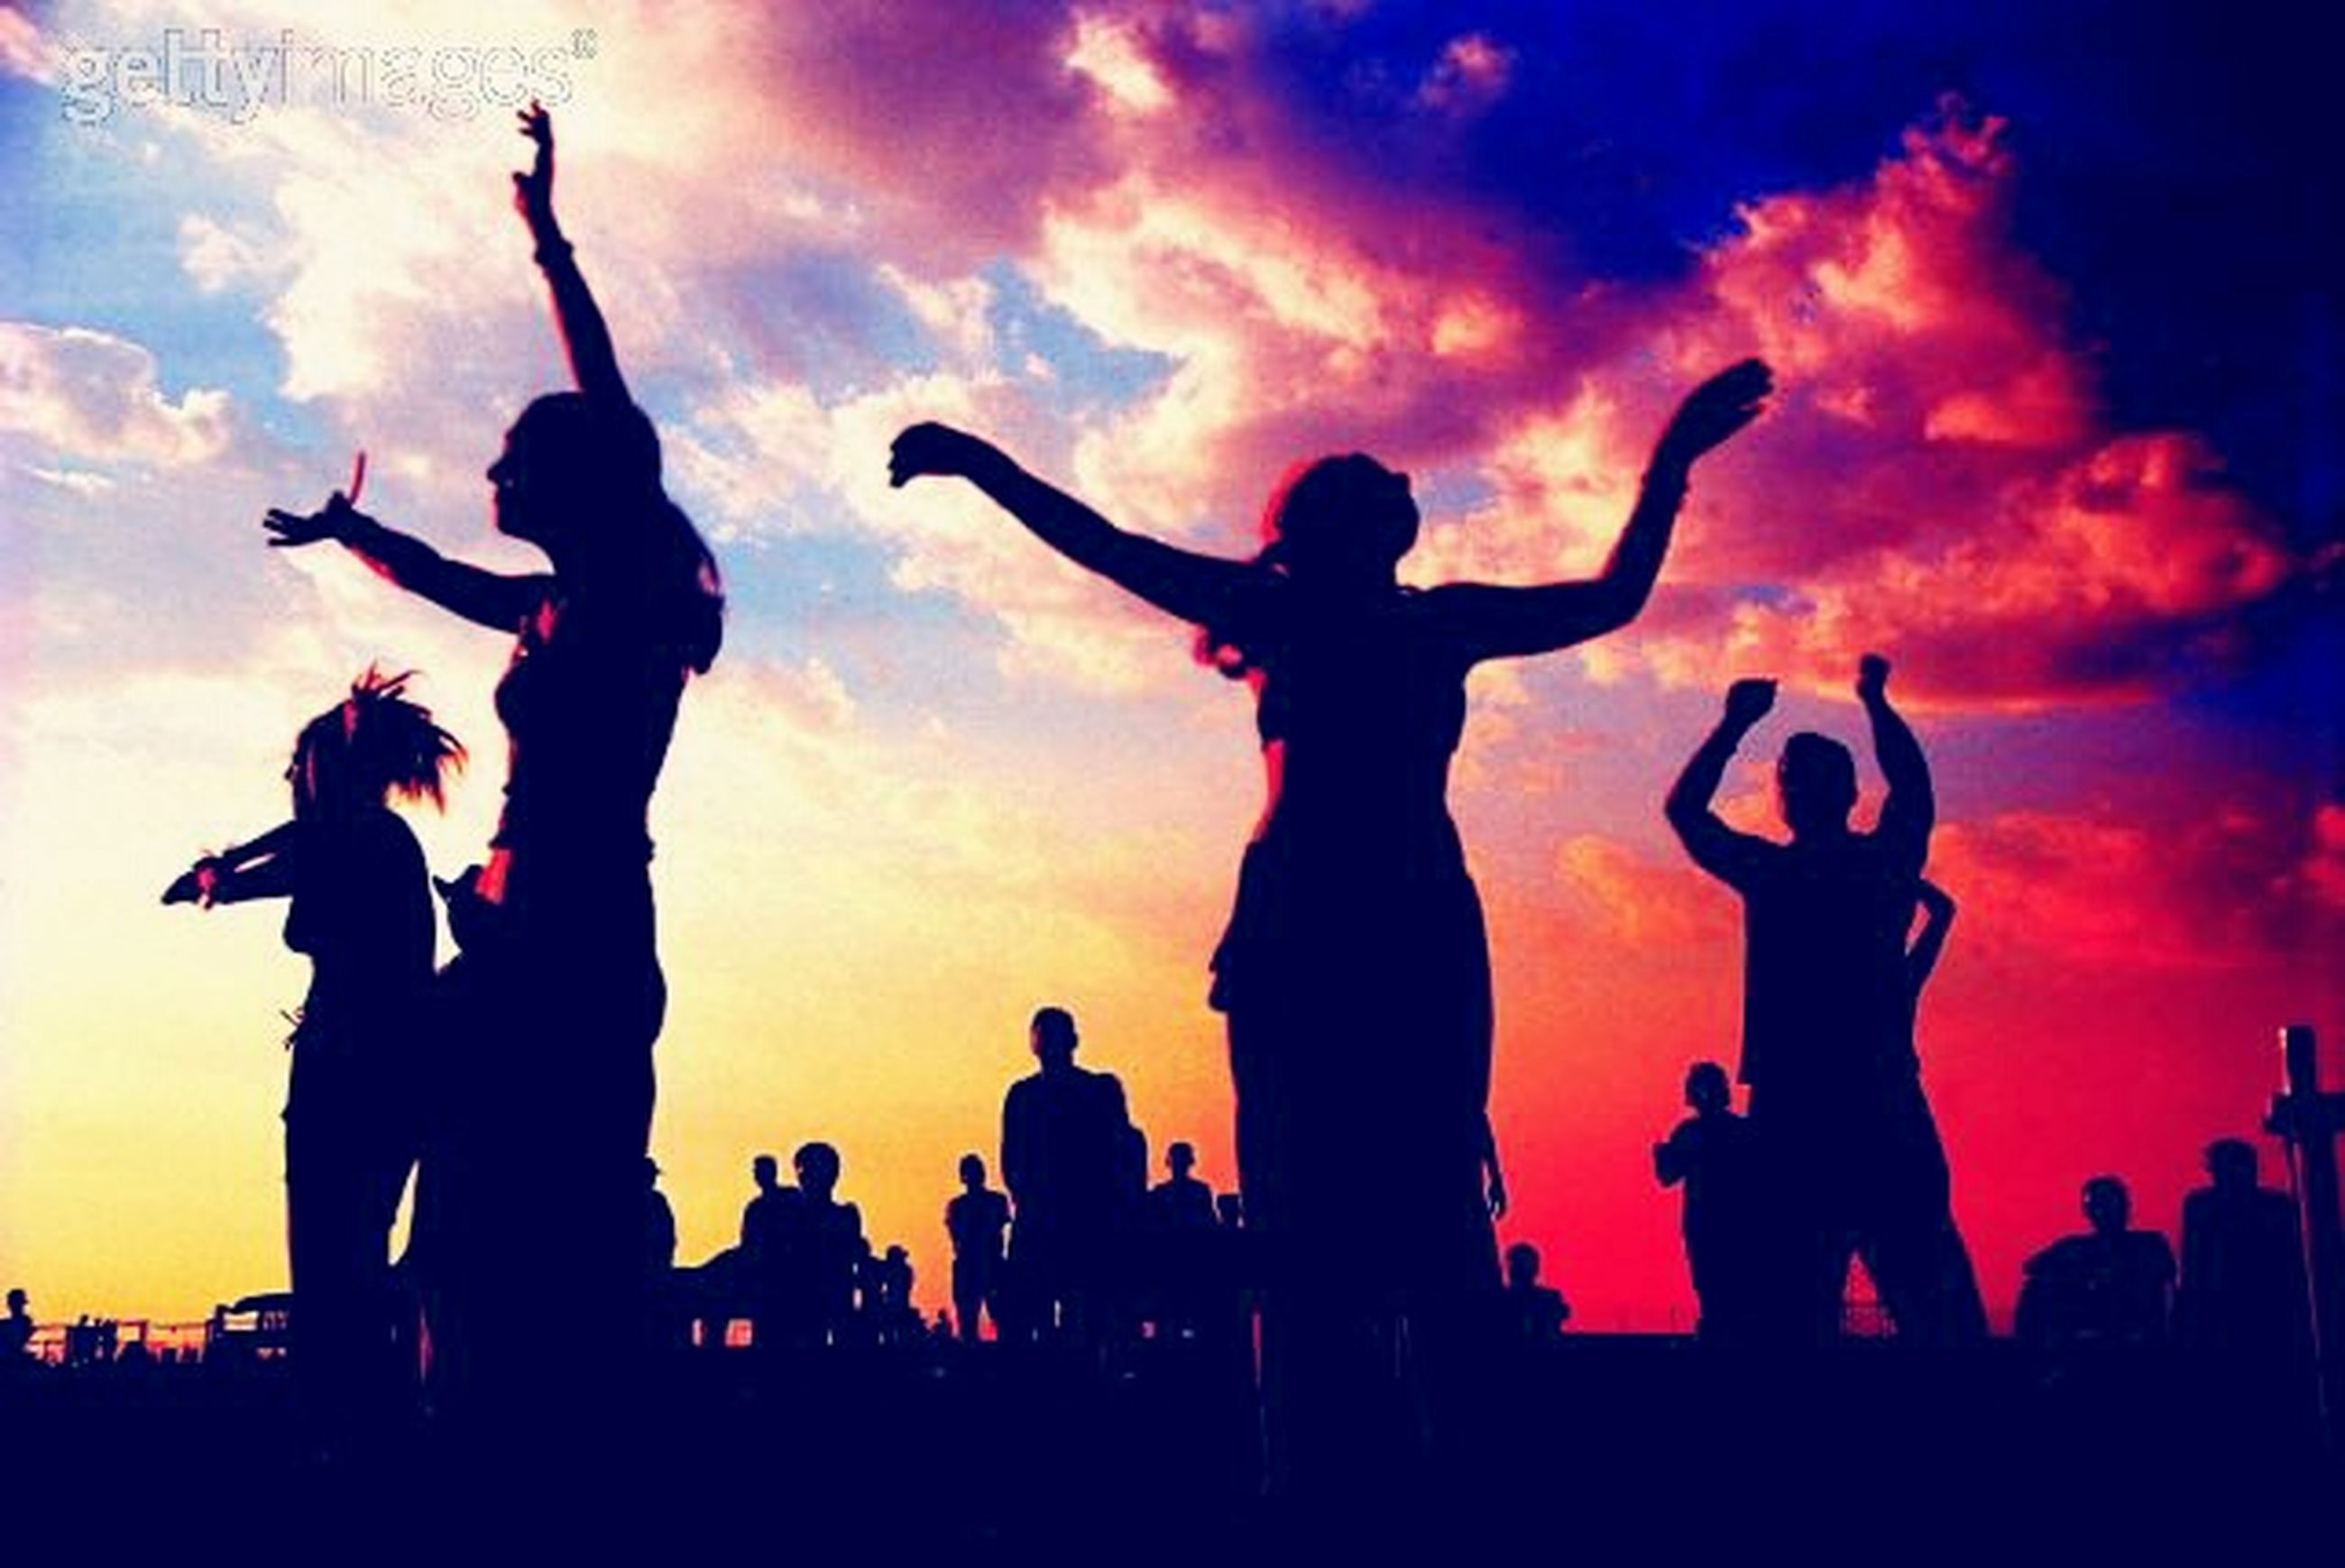 silhouette, sunset, large group of people, sky, enjoyment, leisure activity, men, lifestyles, togetherness, fun, orange color, arms raised, arts culture and entertainment, cloud - sky, person, performance, excitement, standing, crowd